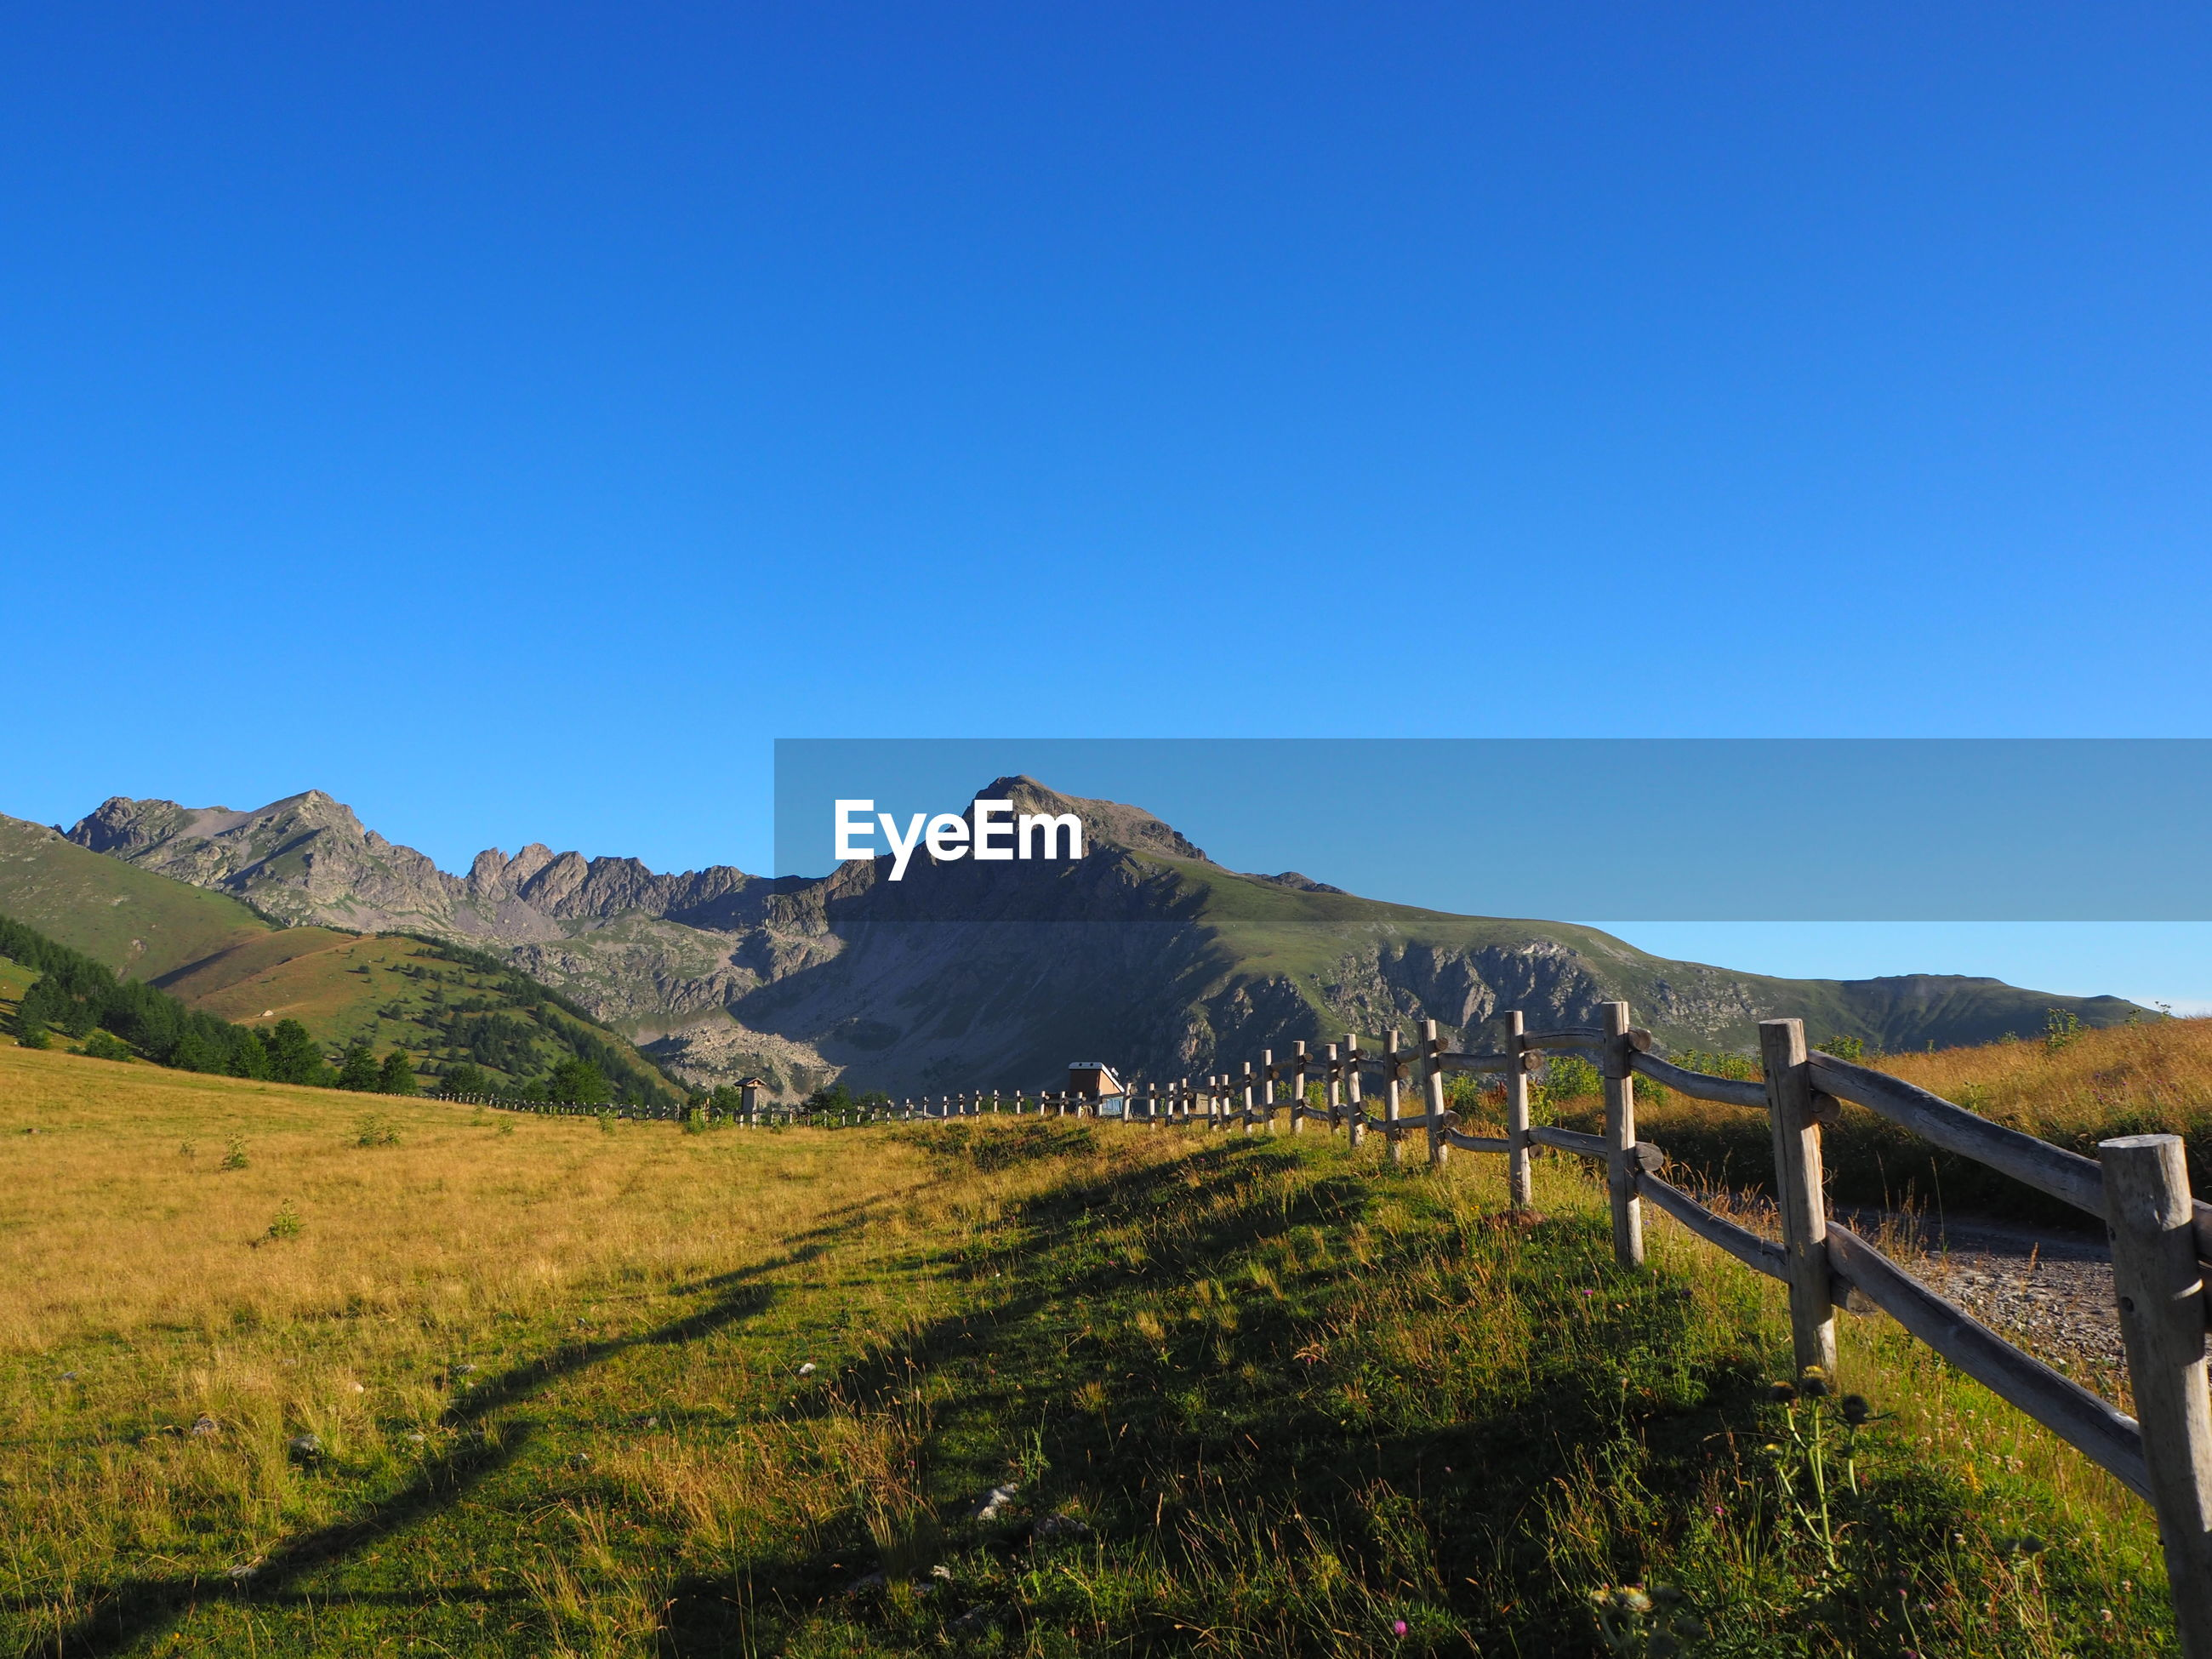 SCENIC VIEW OF FIELD AND MOUNTAINS AGAINST CLEAR BLUE SKY